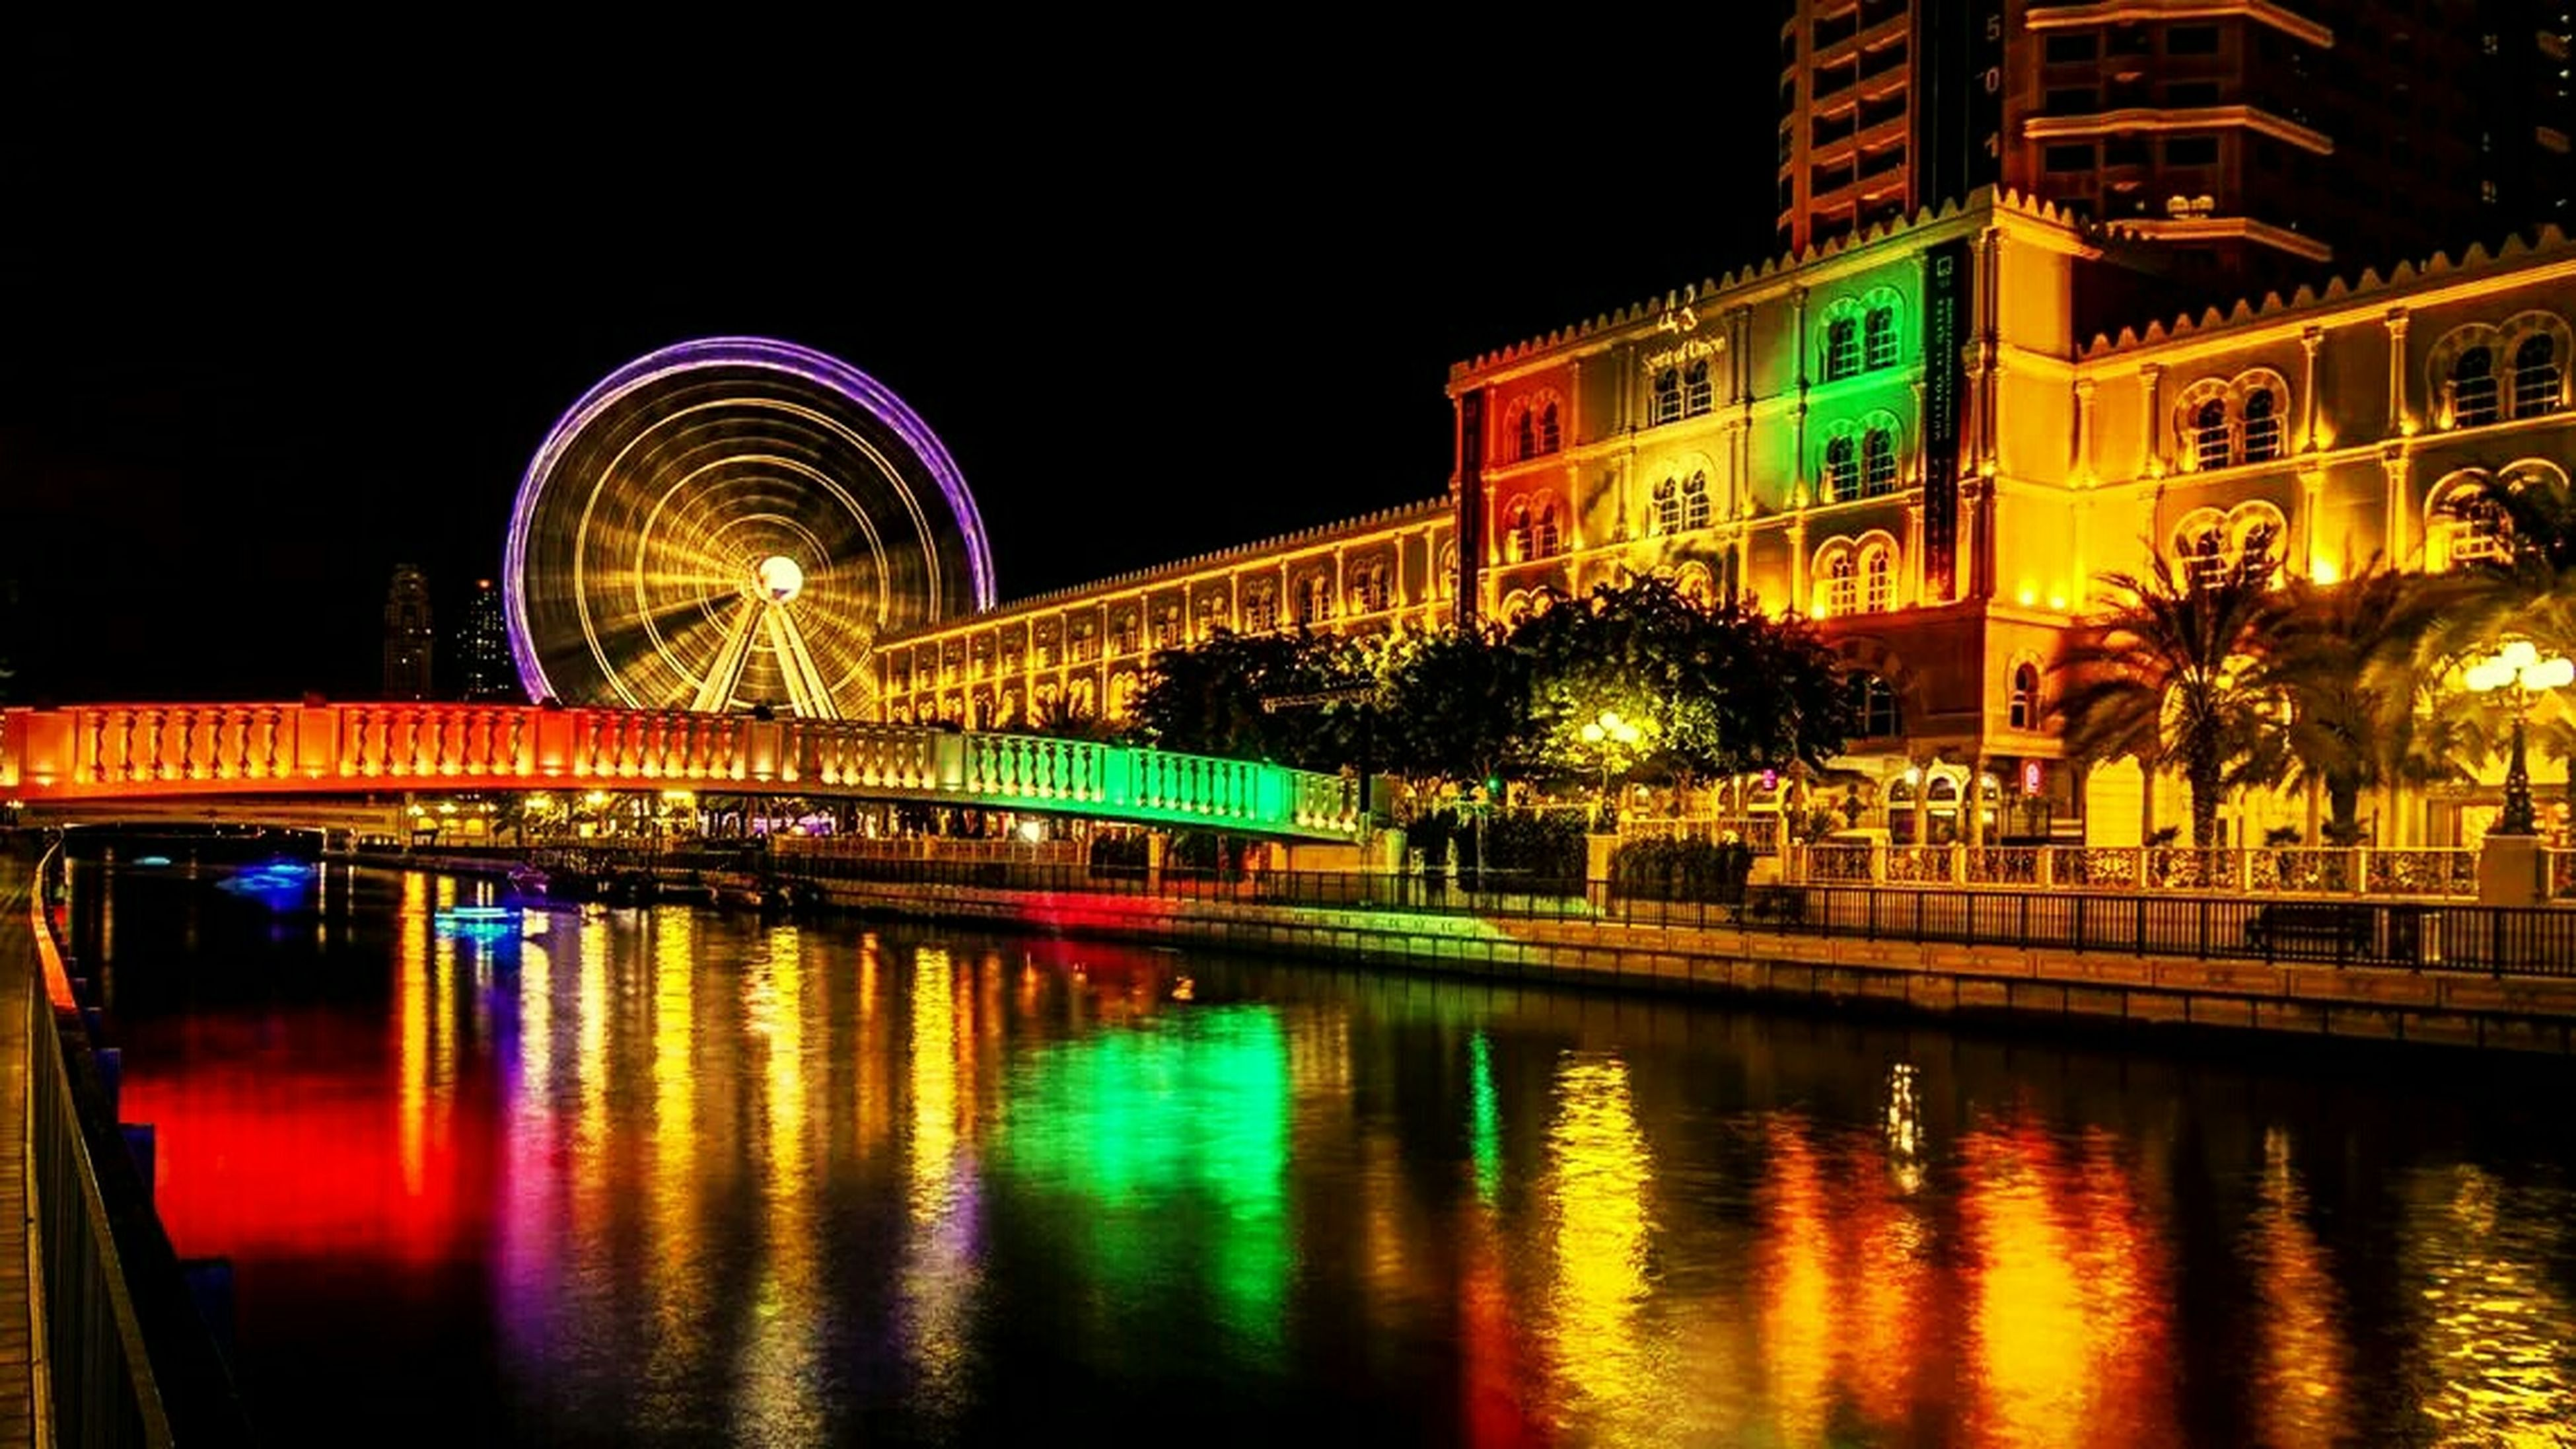 illuminated, night, architecture, building exterior, built structure, reflection, water, city, waterfront, long exposure, multi colored, motion, river, light trail, outdoors, city life, ferris wheel, travel destinations, light - natural phenomenon, blurred motion